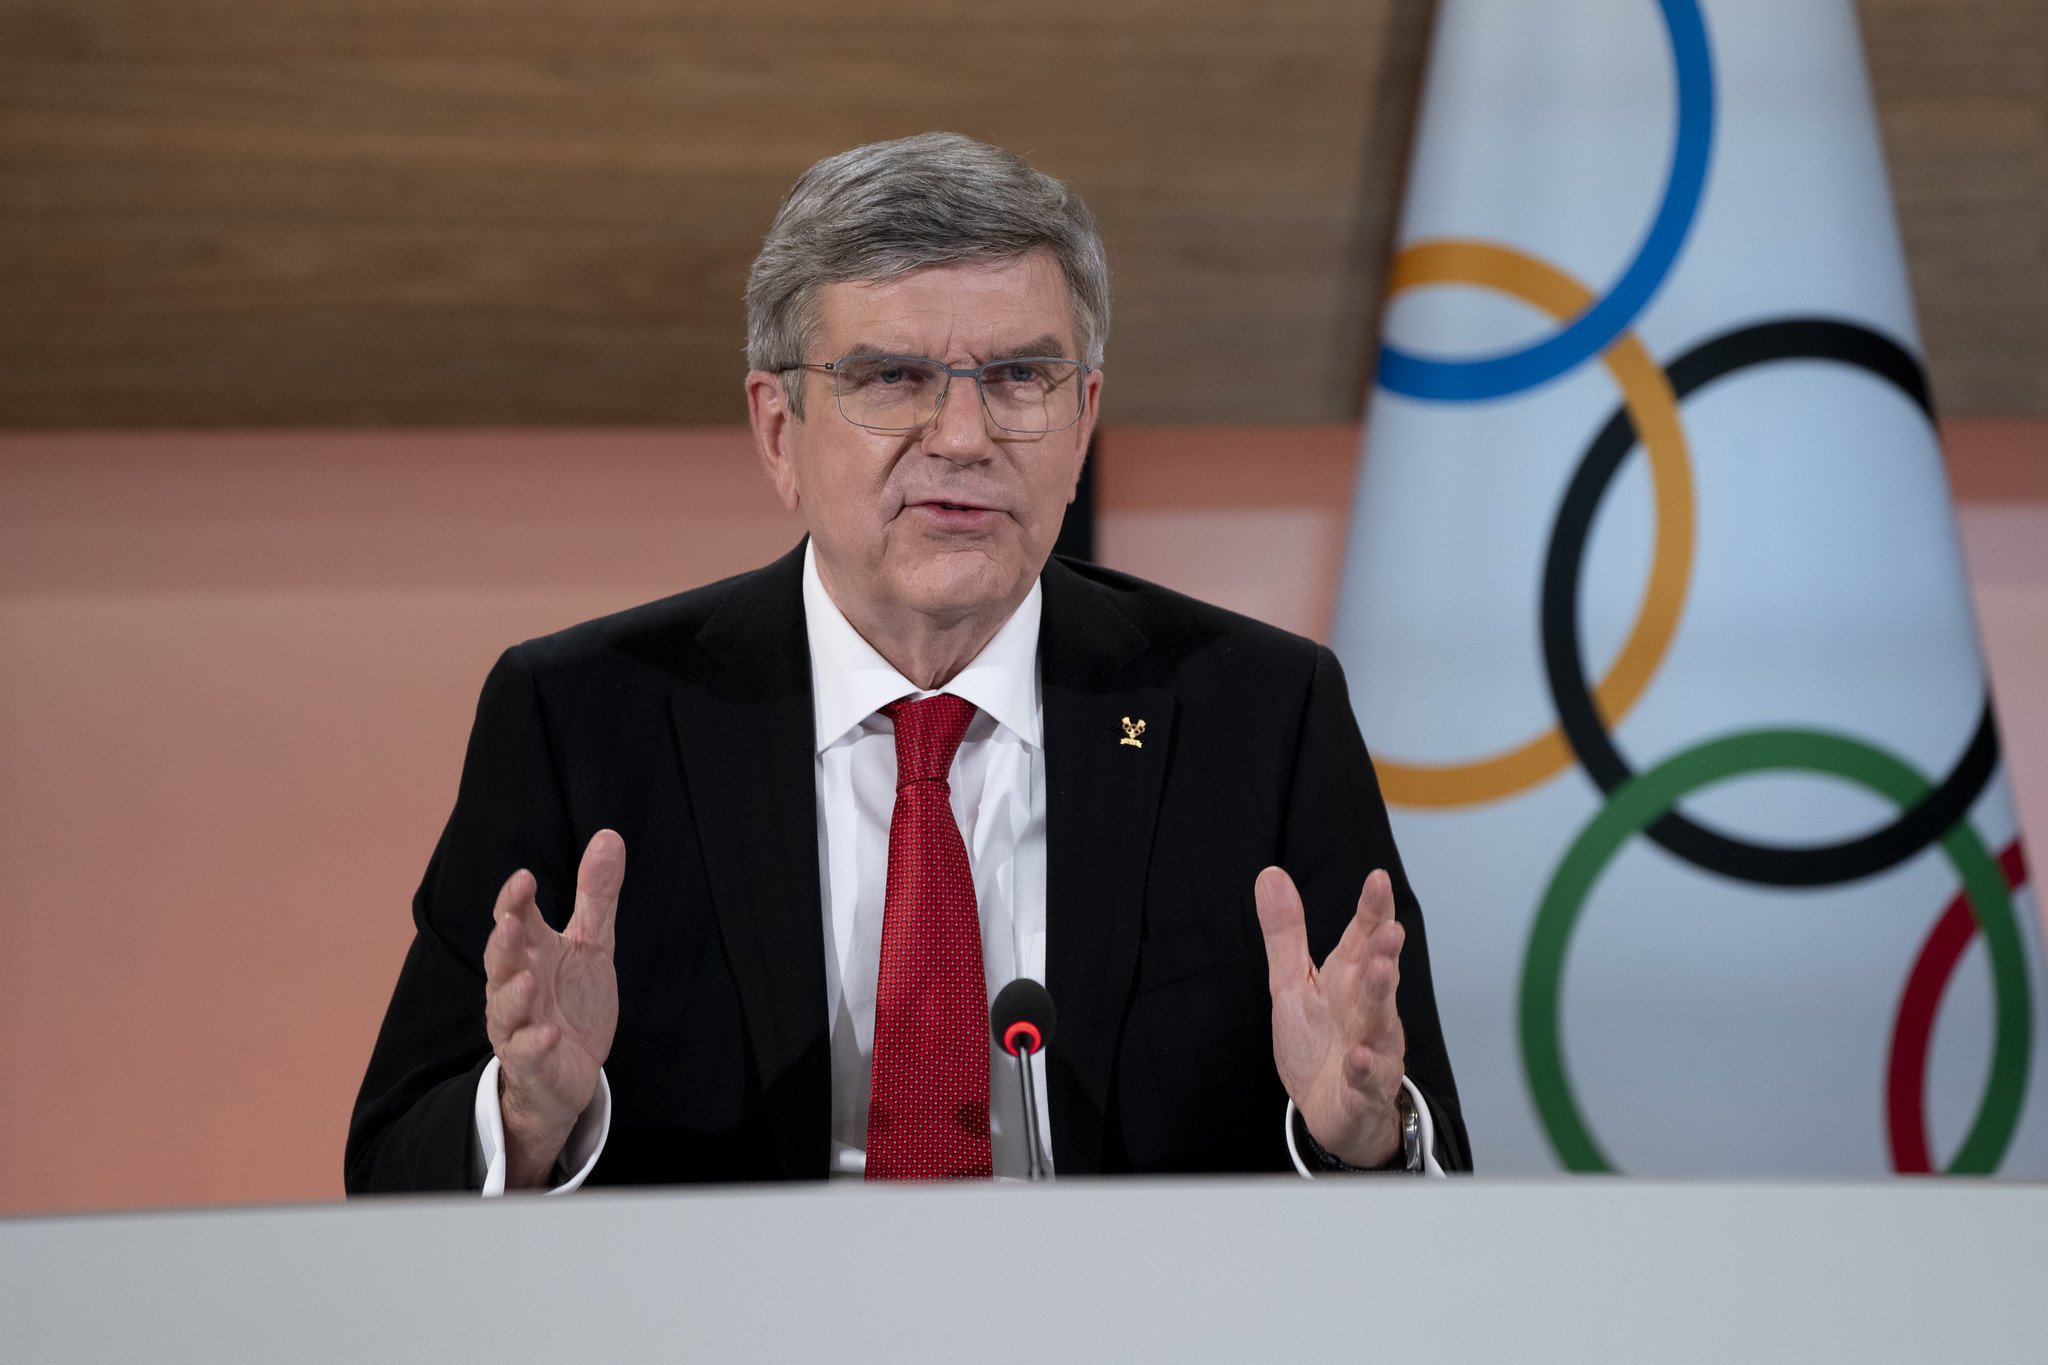 IOC President Thomas Bach revealed China has offered to vaccinate athletes for Tokyo 2020 ©IOC